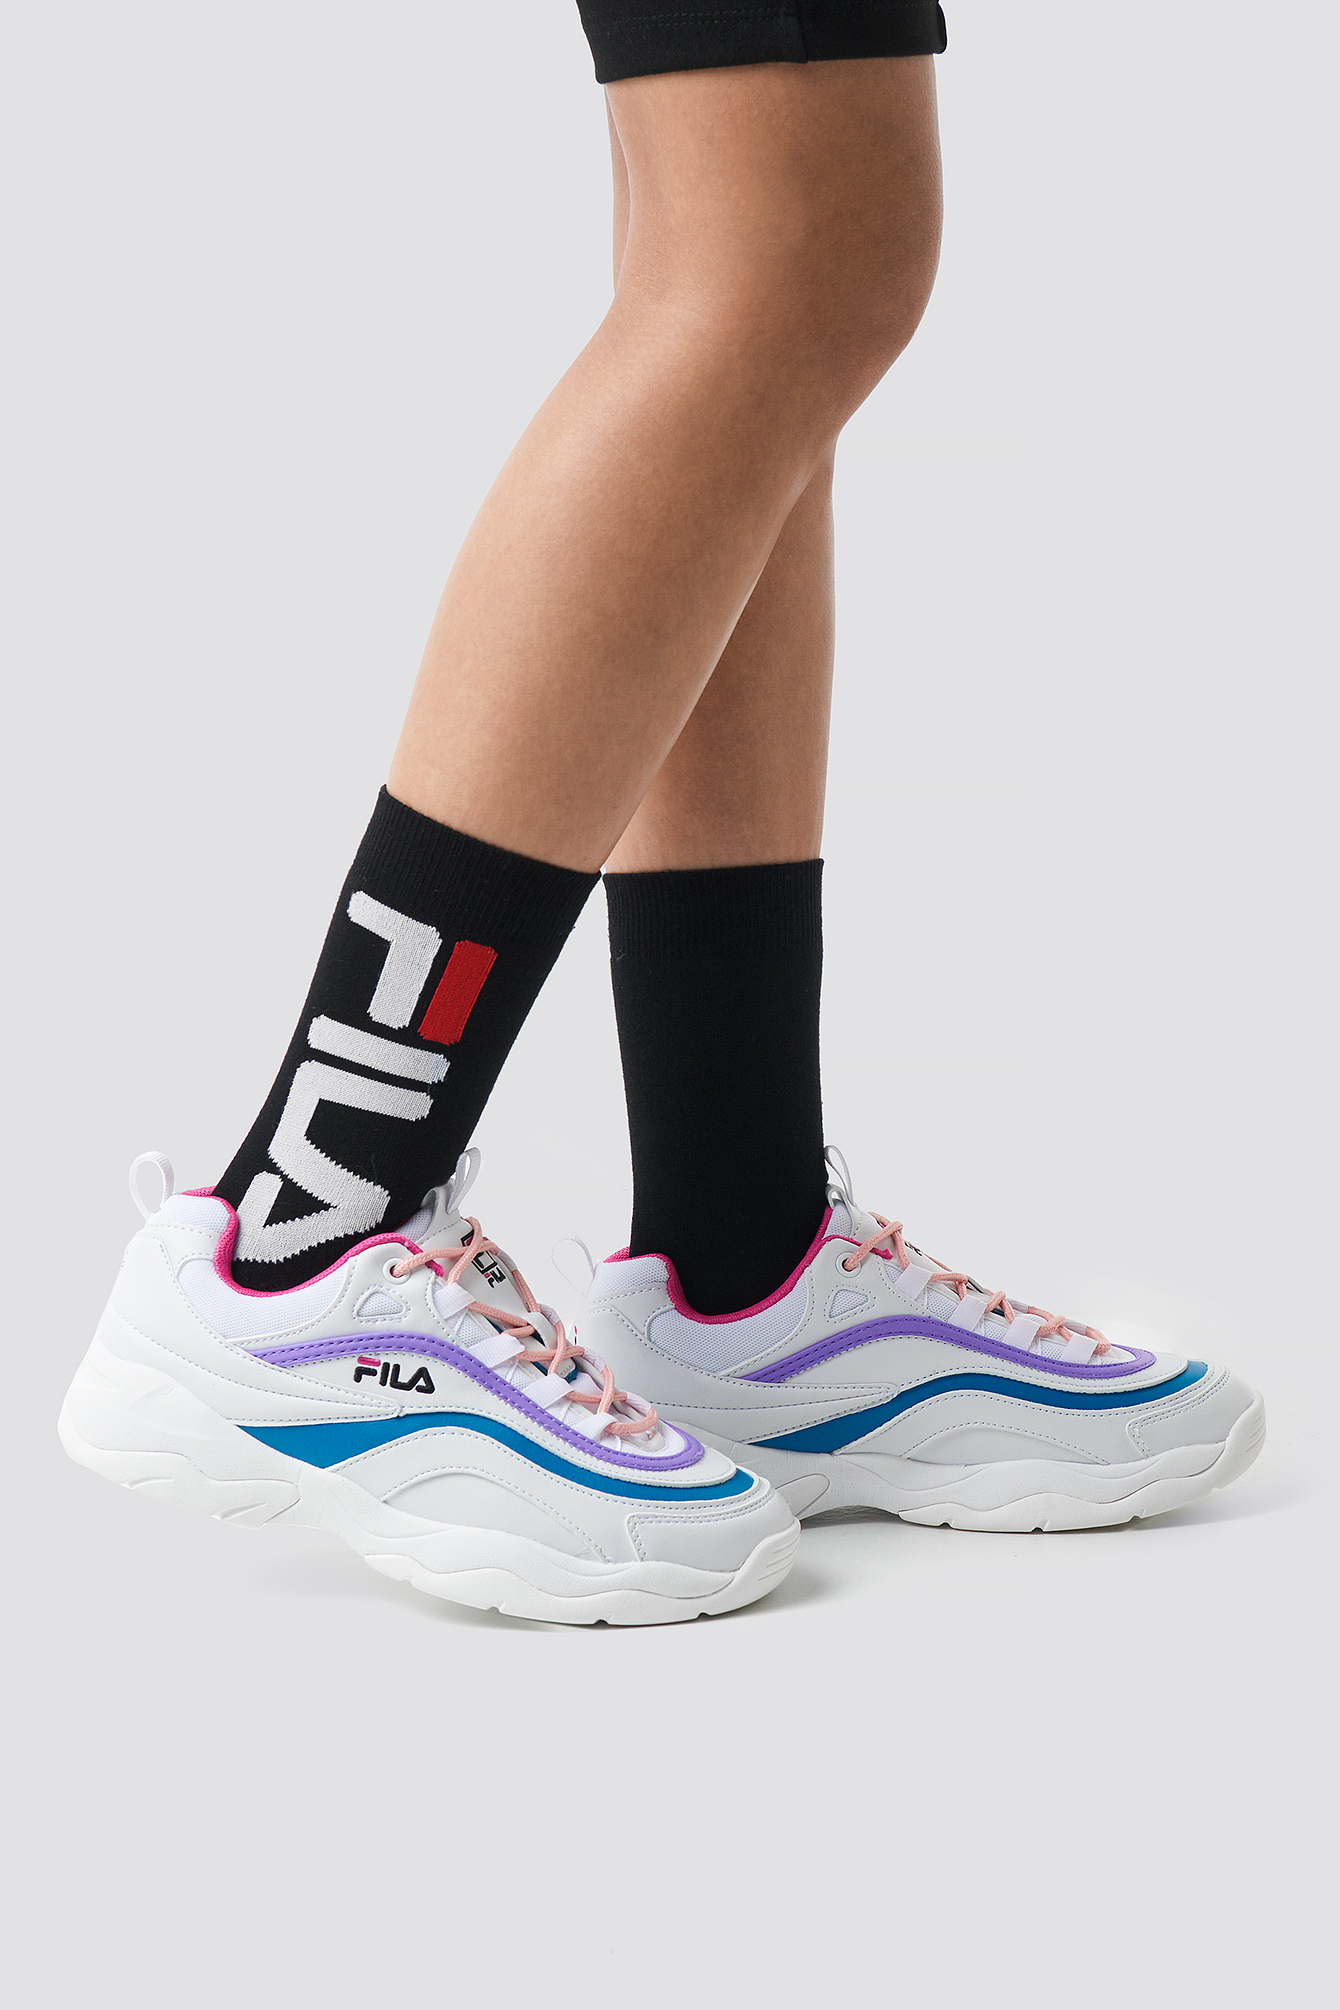 fila -   Urban Socks - Black